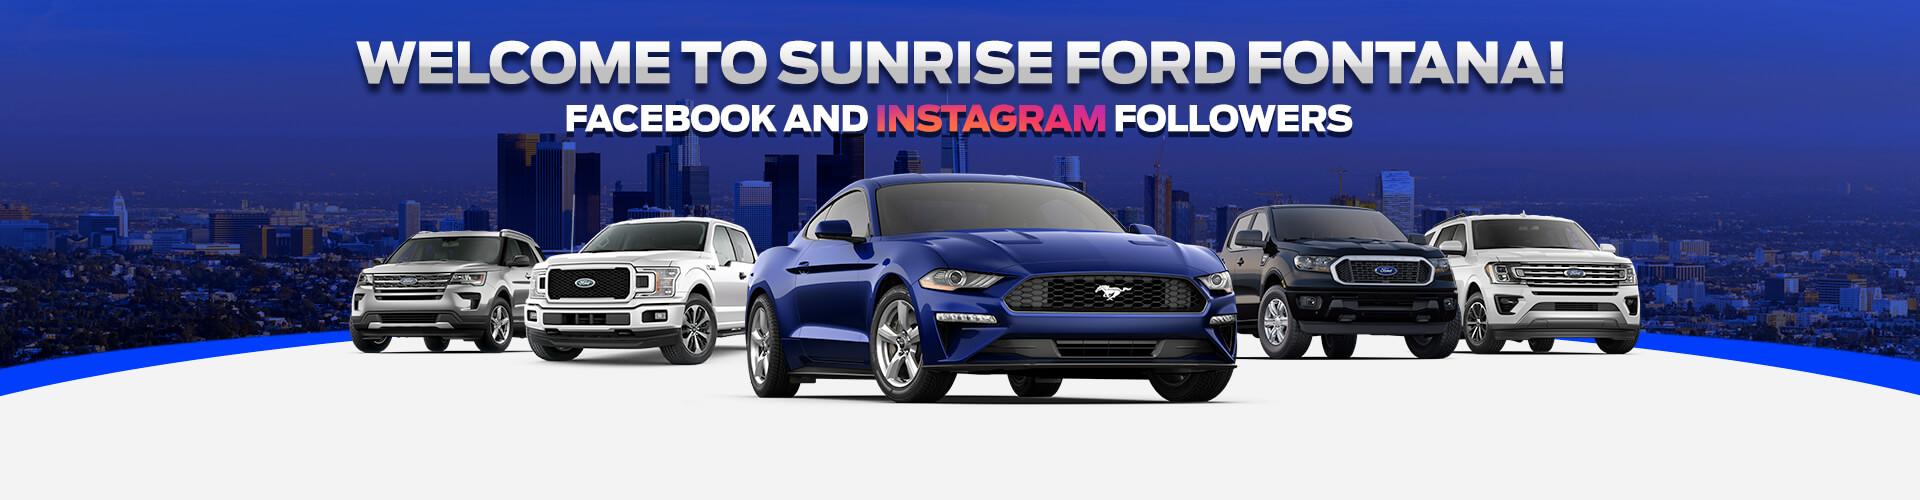 Welcome to Sunrise Ford Fontana Facebook and Instagram Followers